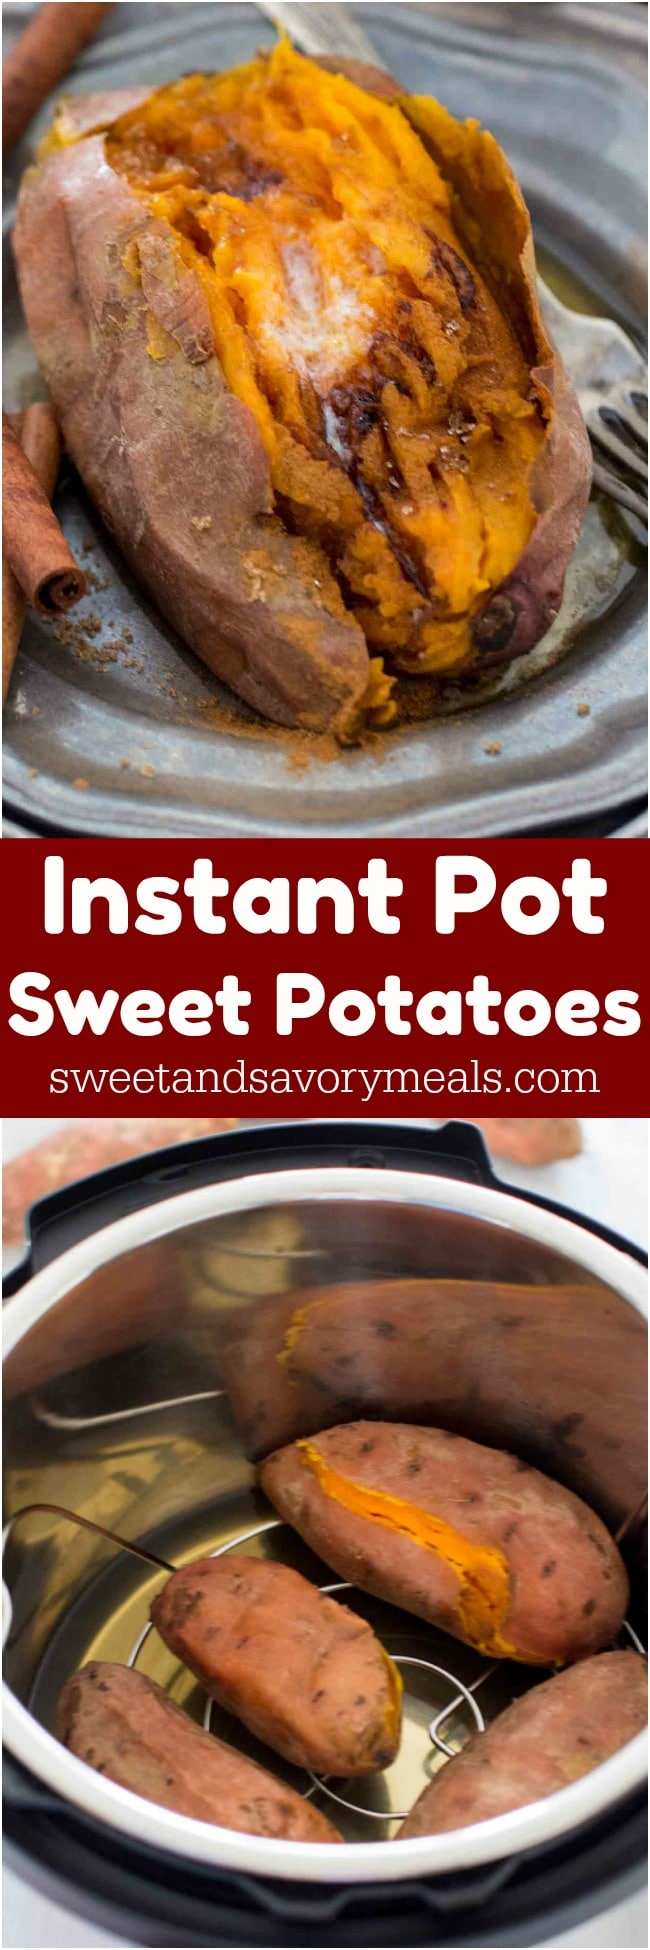 Instant Pot Sweet Potatoes are so tender, fluffy, creamy, incredibly delicious and easy to make in the pressure cooker with the tips and directions you have here.